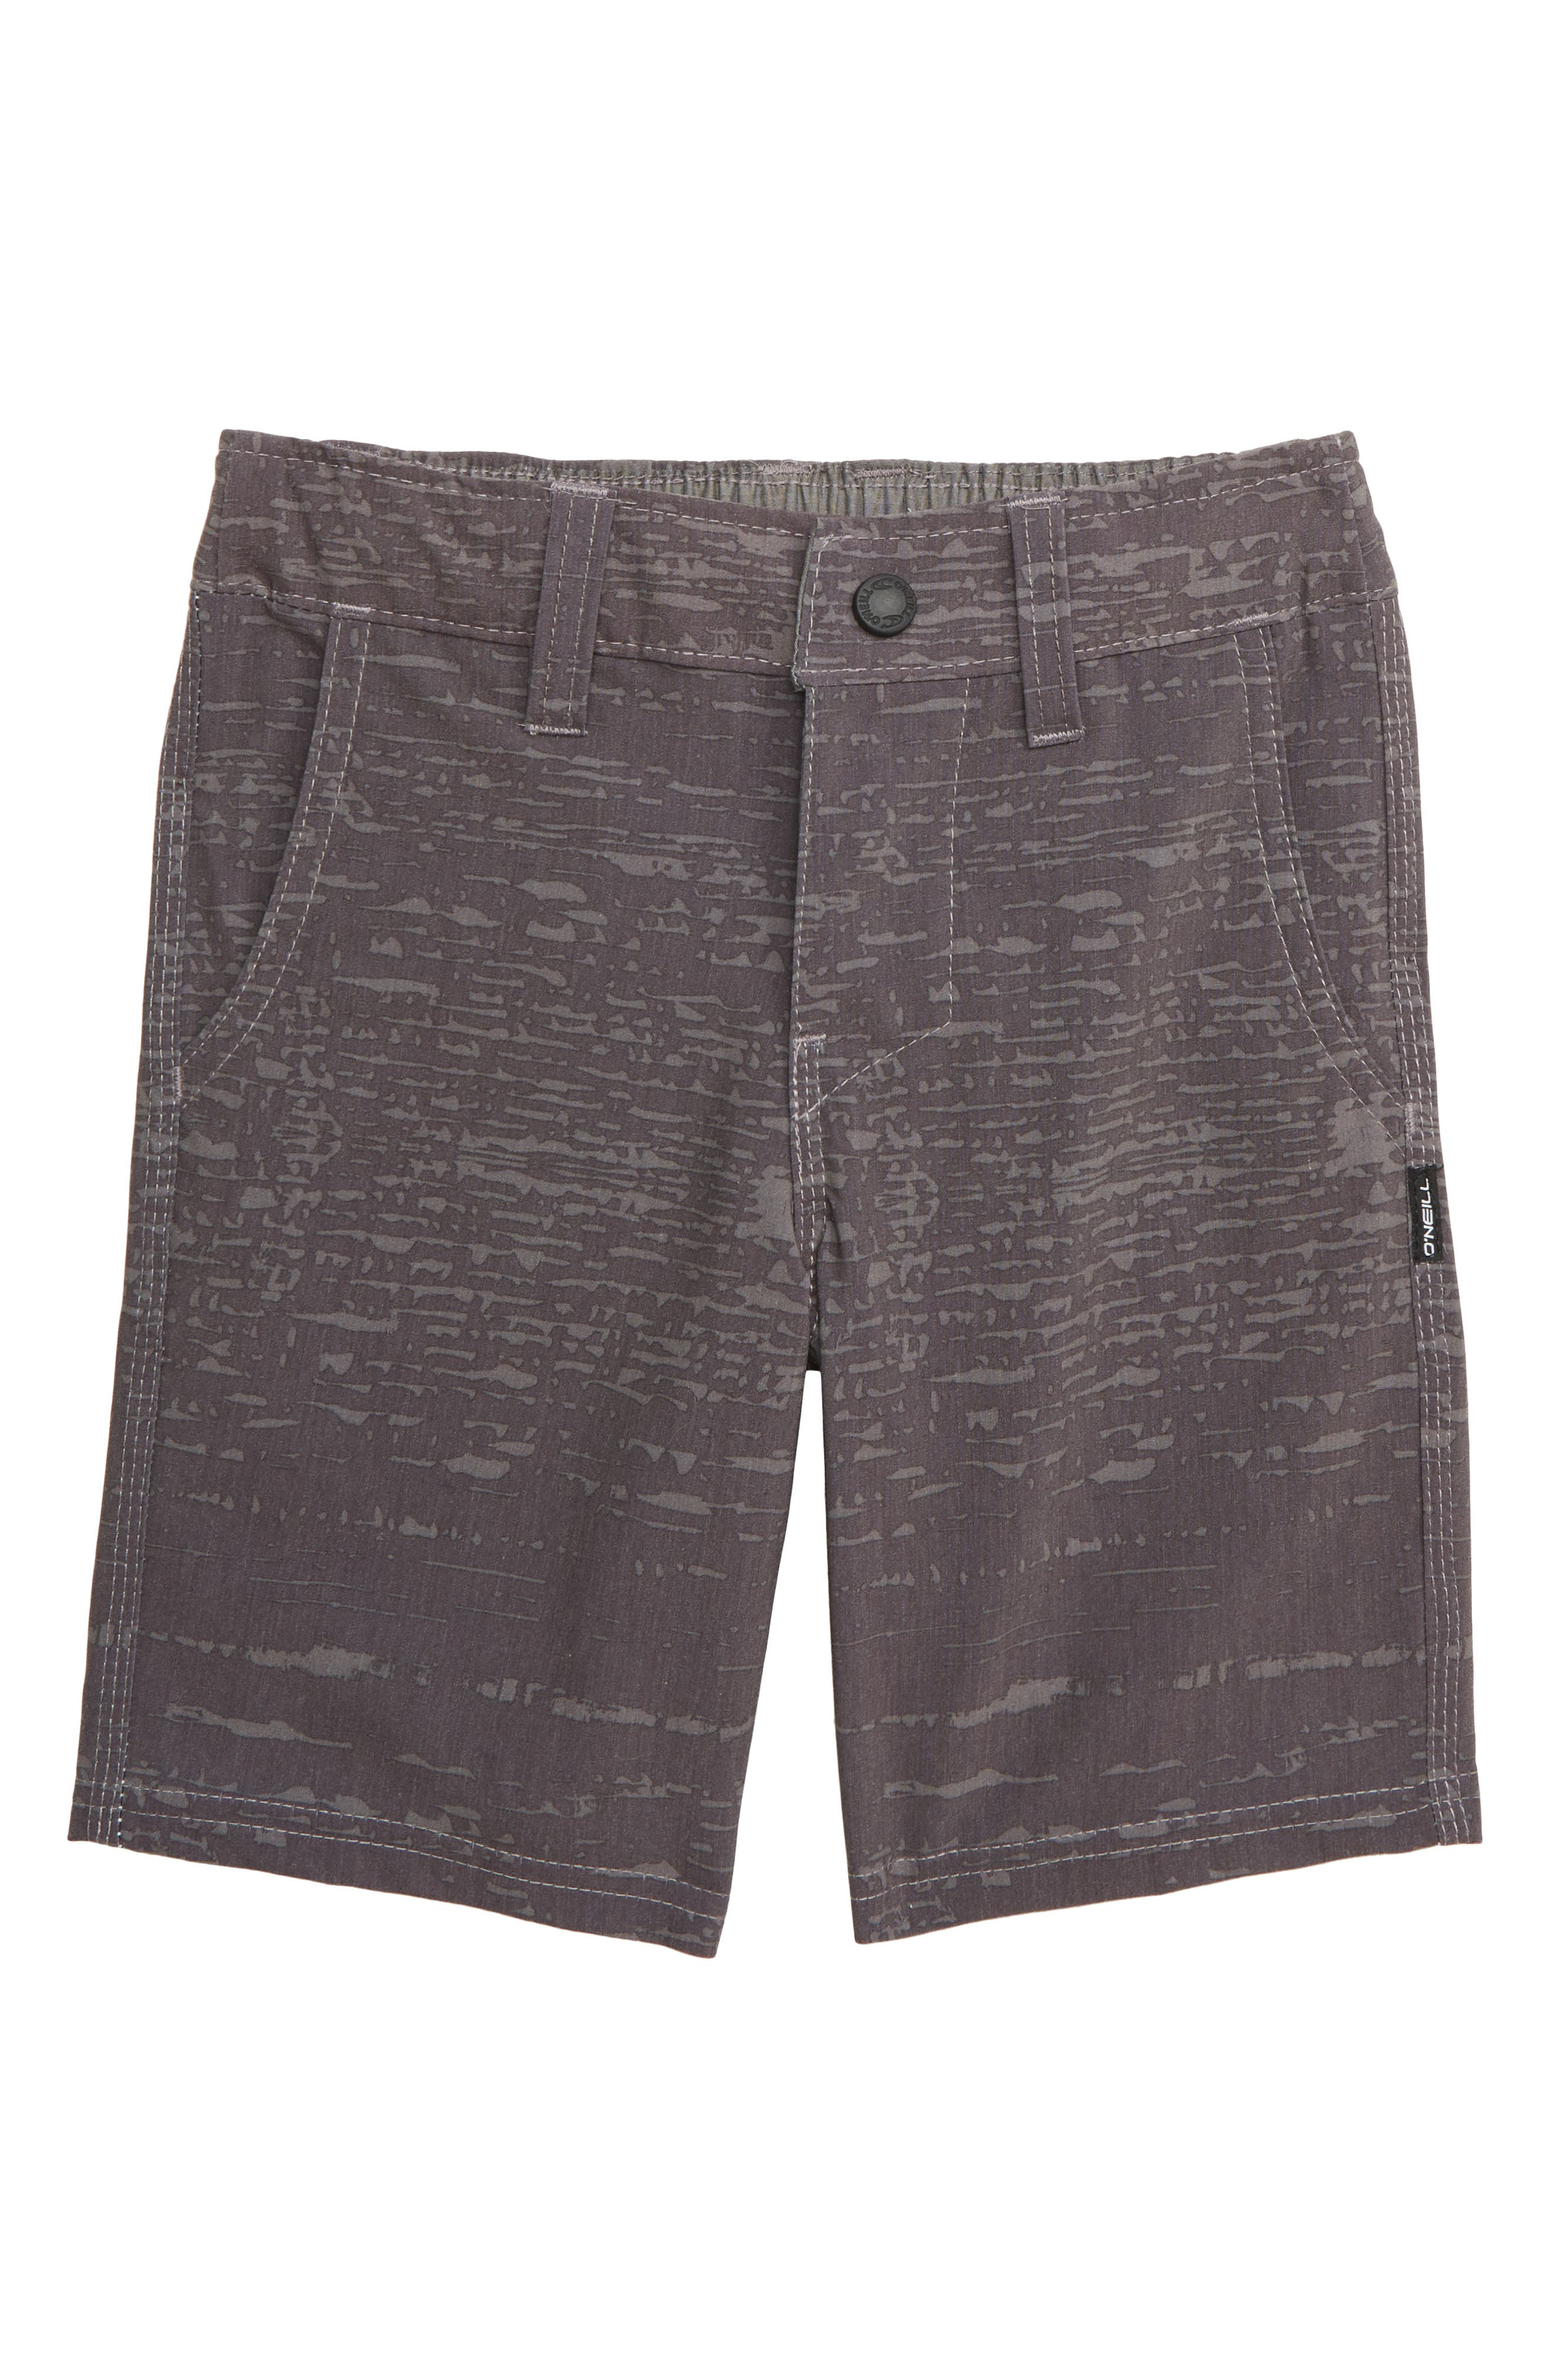 O'NEILL Collective Hybrid Shorts, Main, color, BLACK